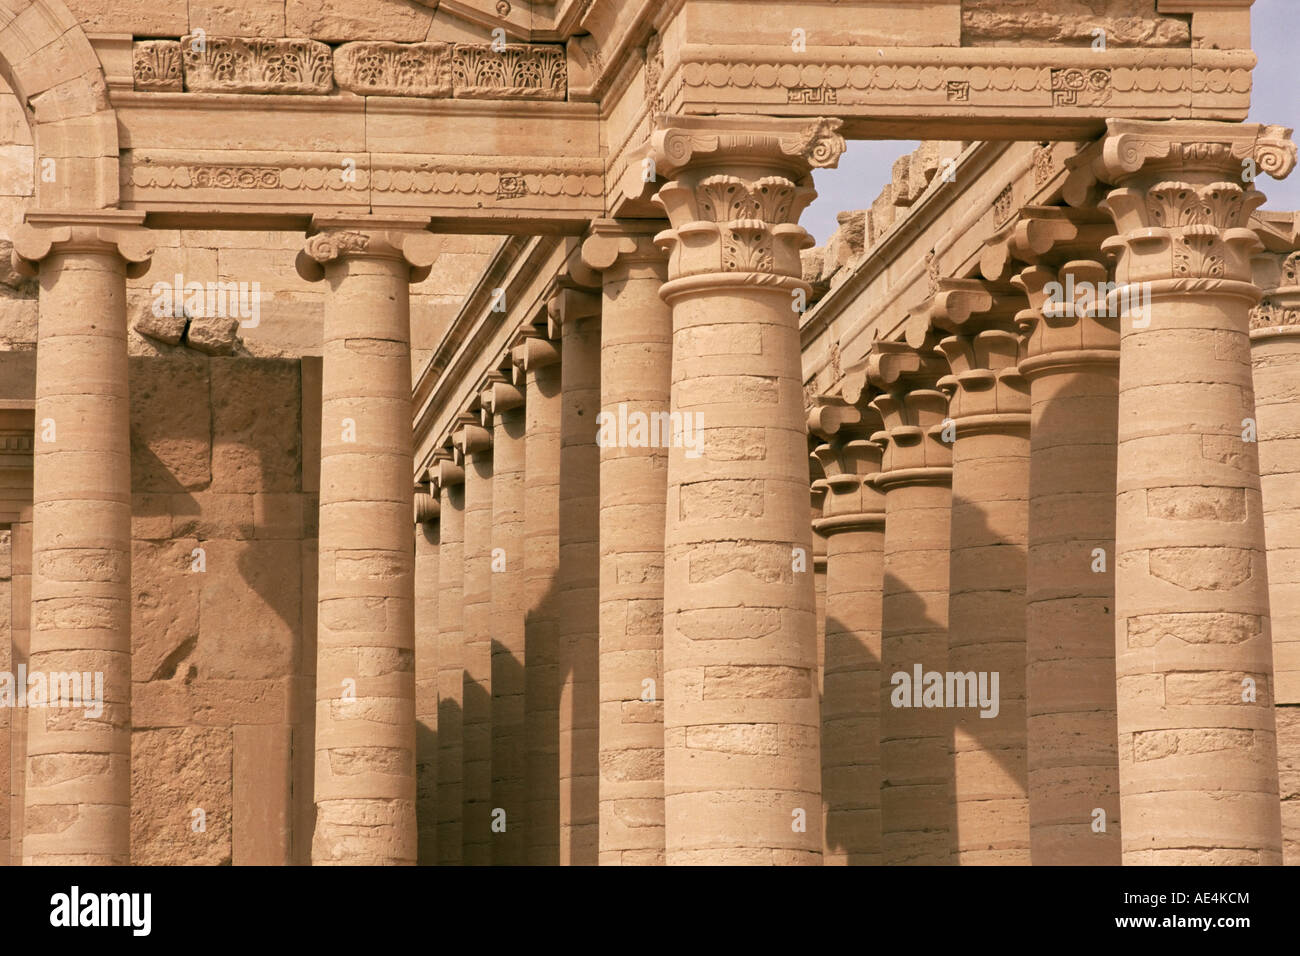 Temple of Mrn, Hatra, UNESCO World Heritage Site, Iraq, Middle East - Stock Image